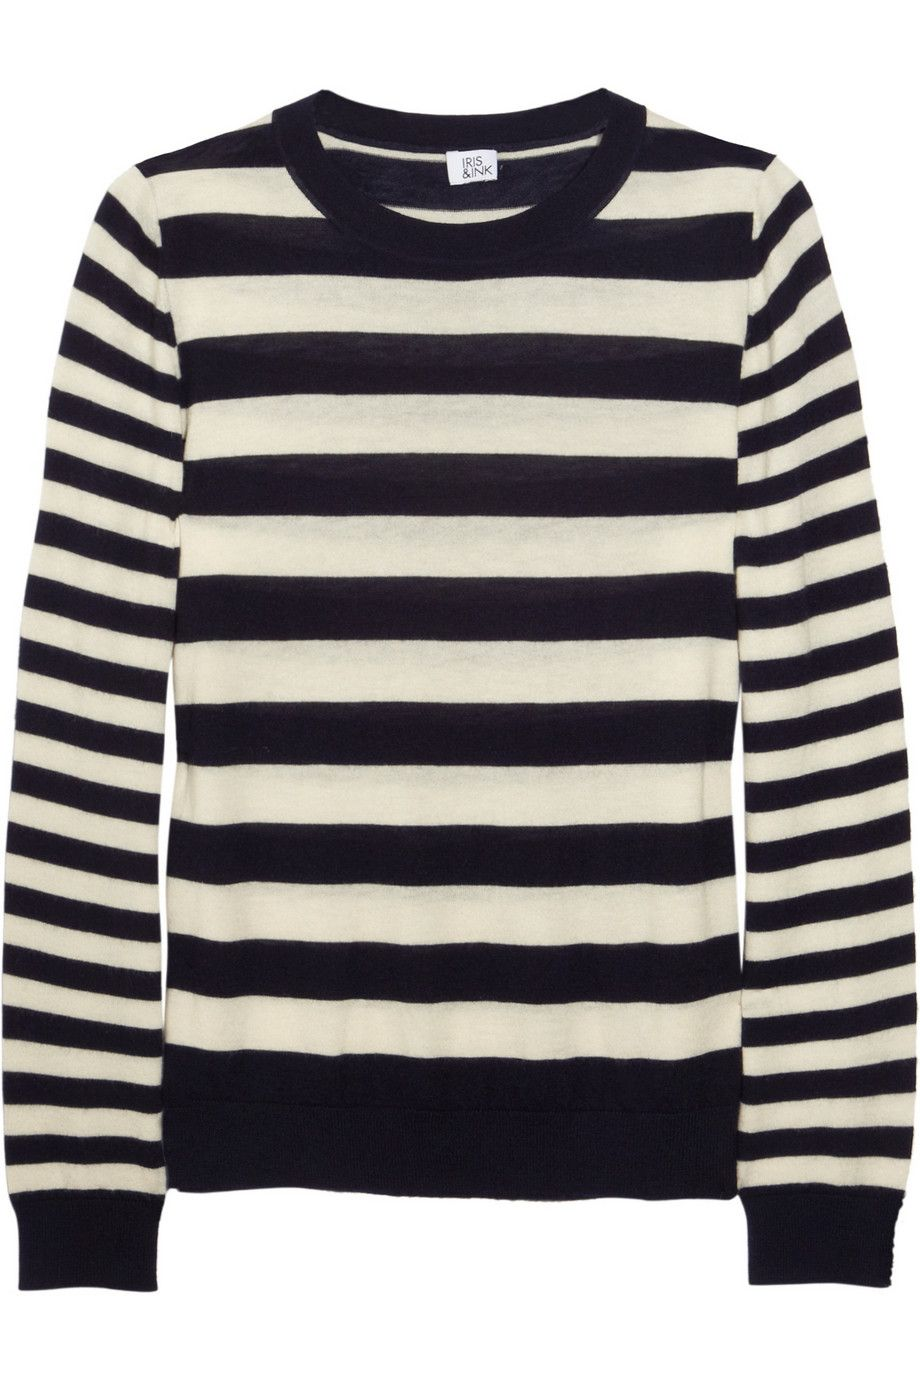 Striped cashmere sweater by Iris & Ink | Things I love | Pinterest ...